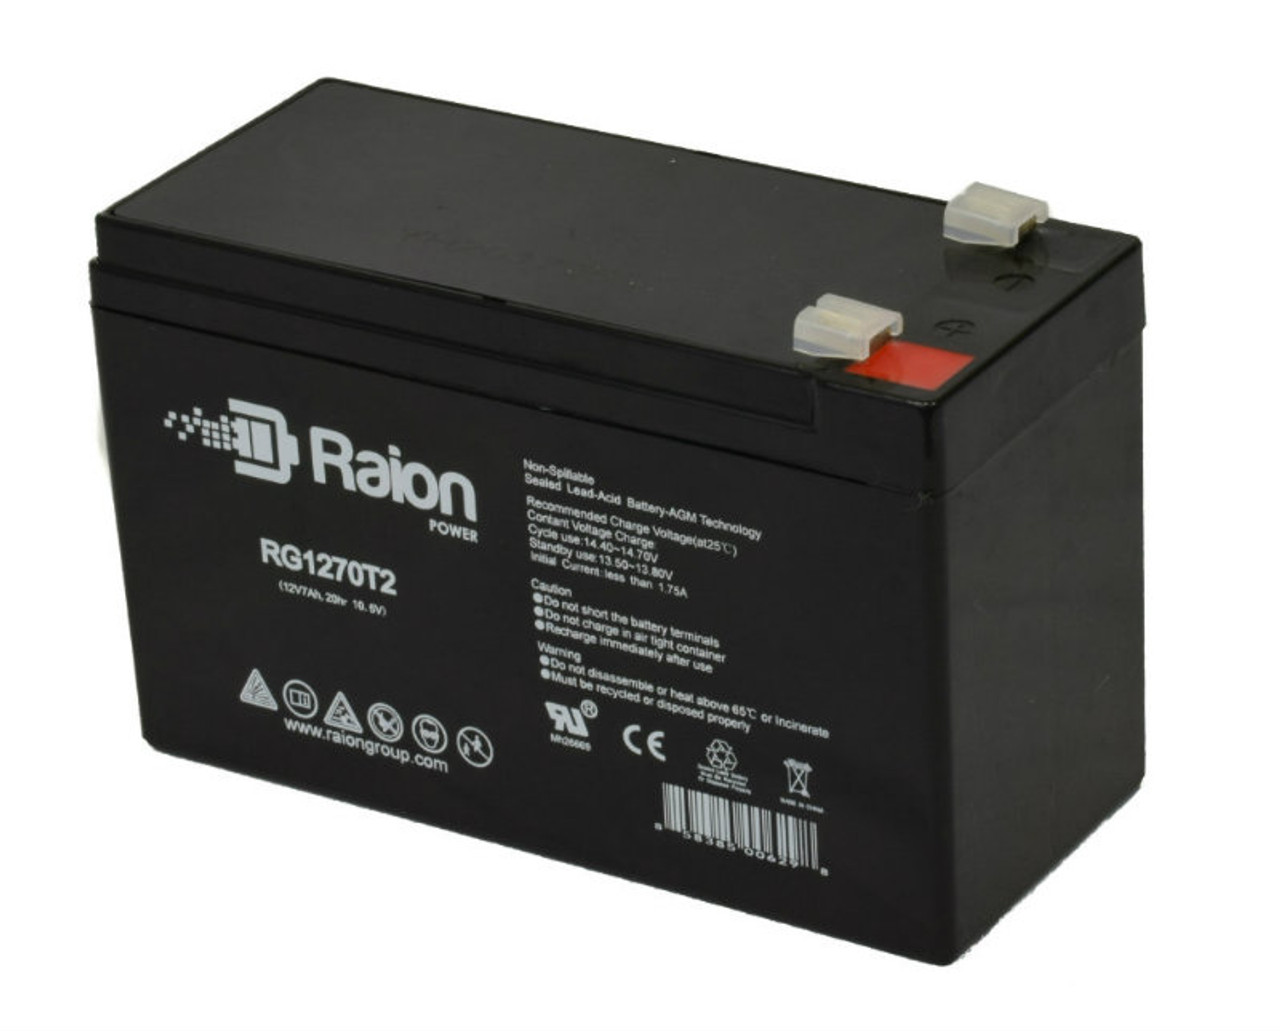 Raion Power RG1270T1 Replacement Battery for ExpertPower EXP1270